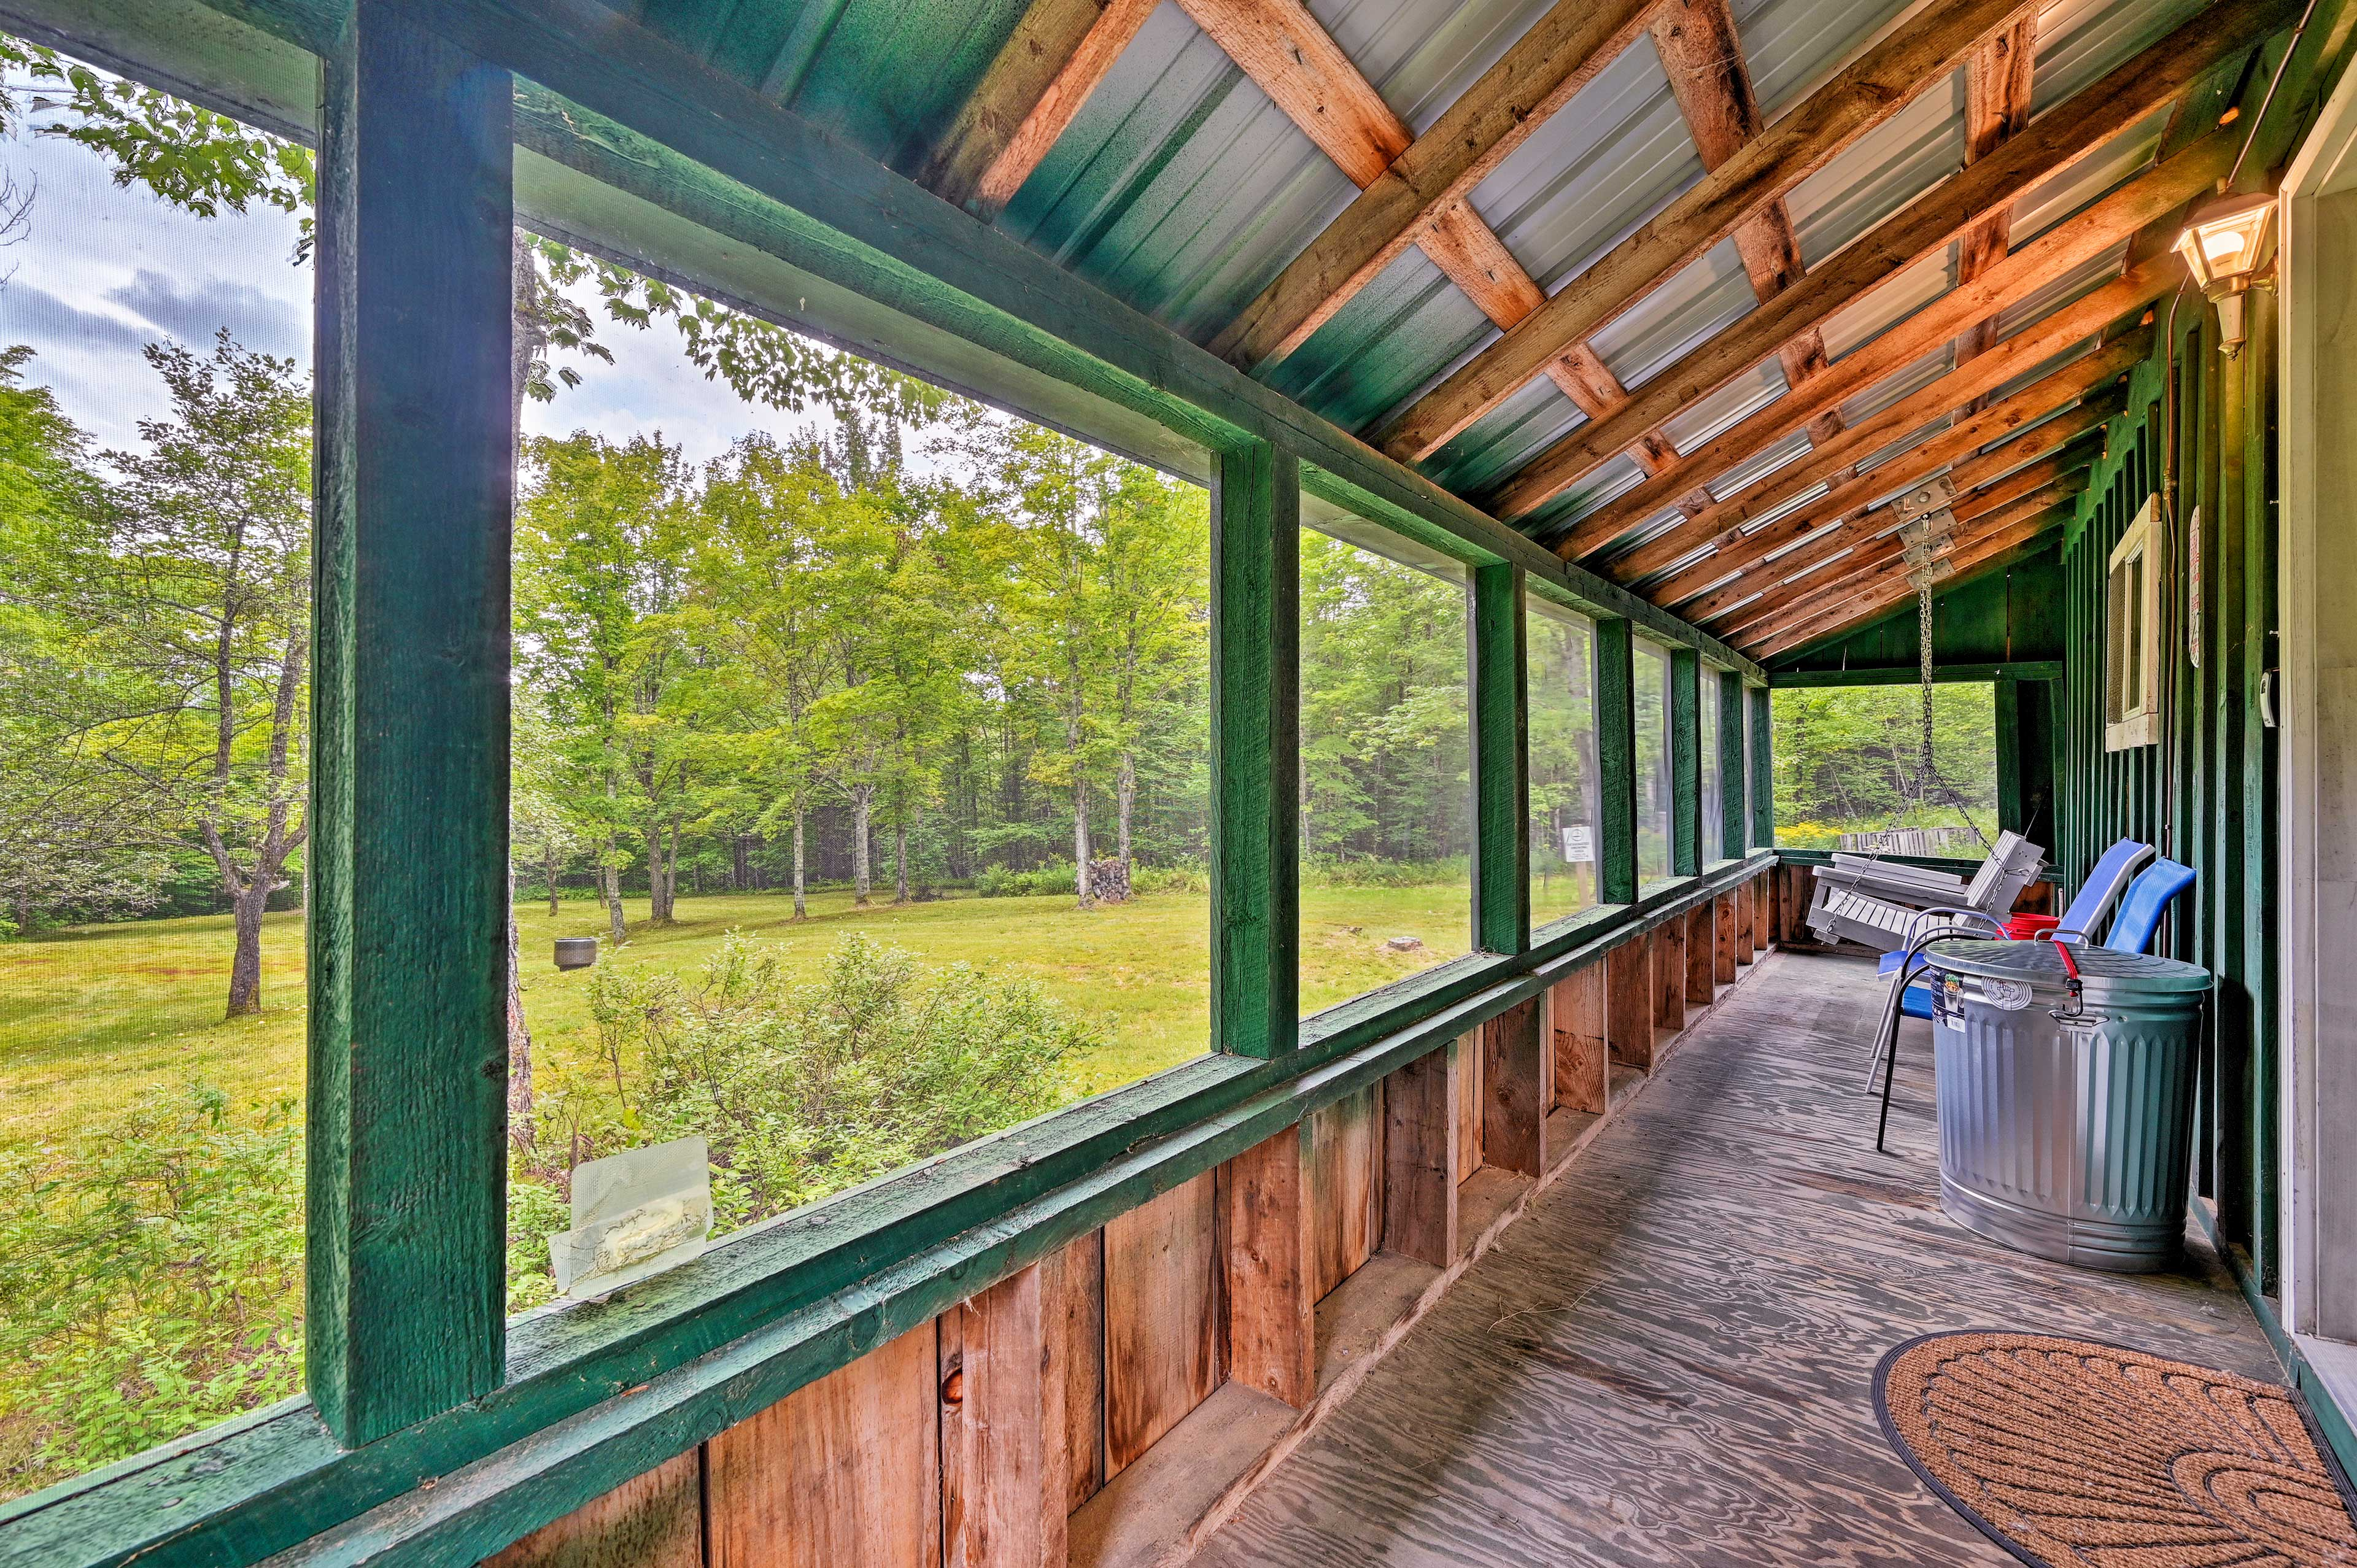 Take it easy in the comfort of the screened-in porch.